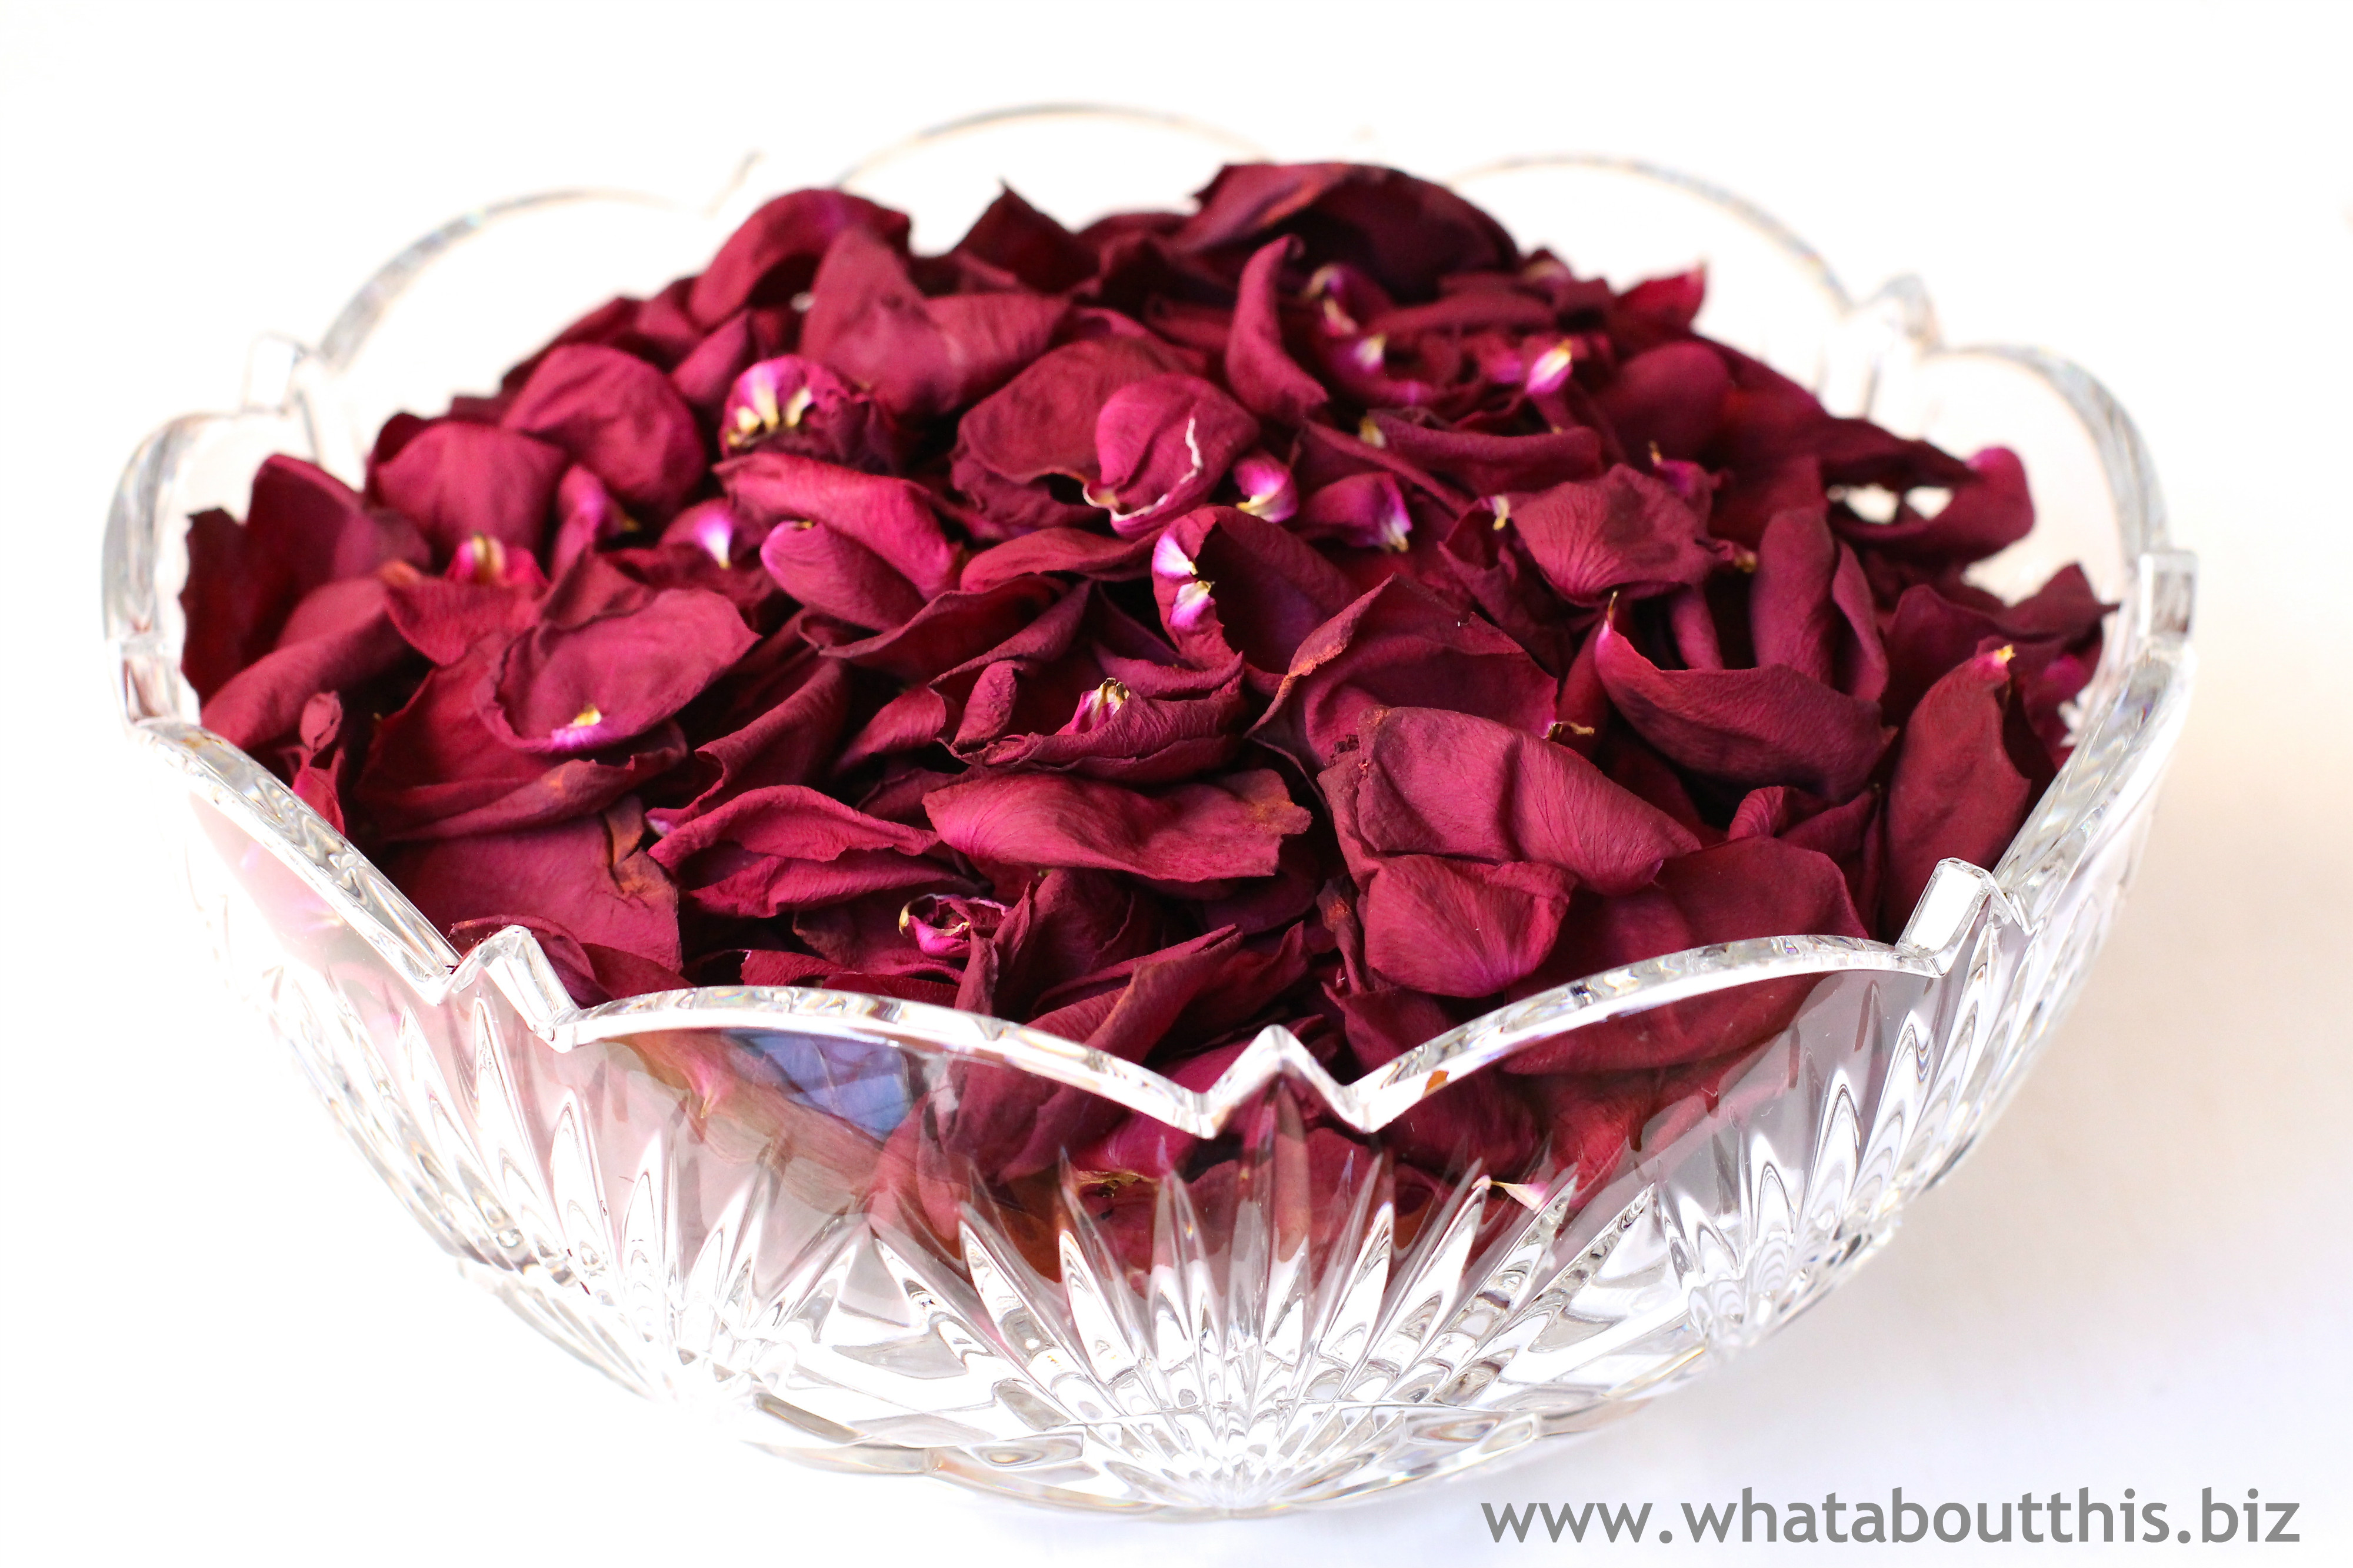 Homemade Potpourri with Rose Petals and Lavender | What about this?